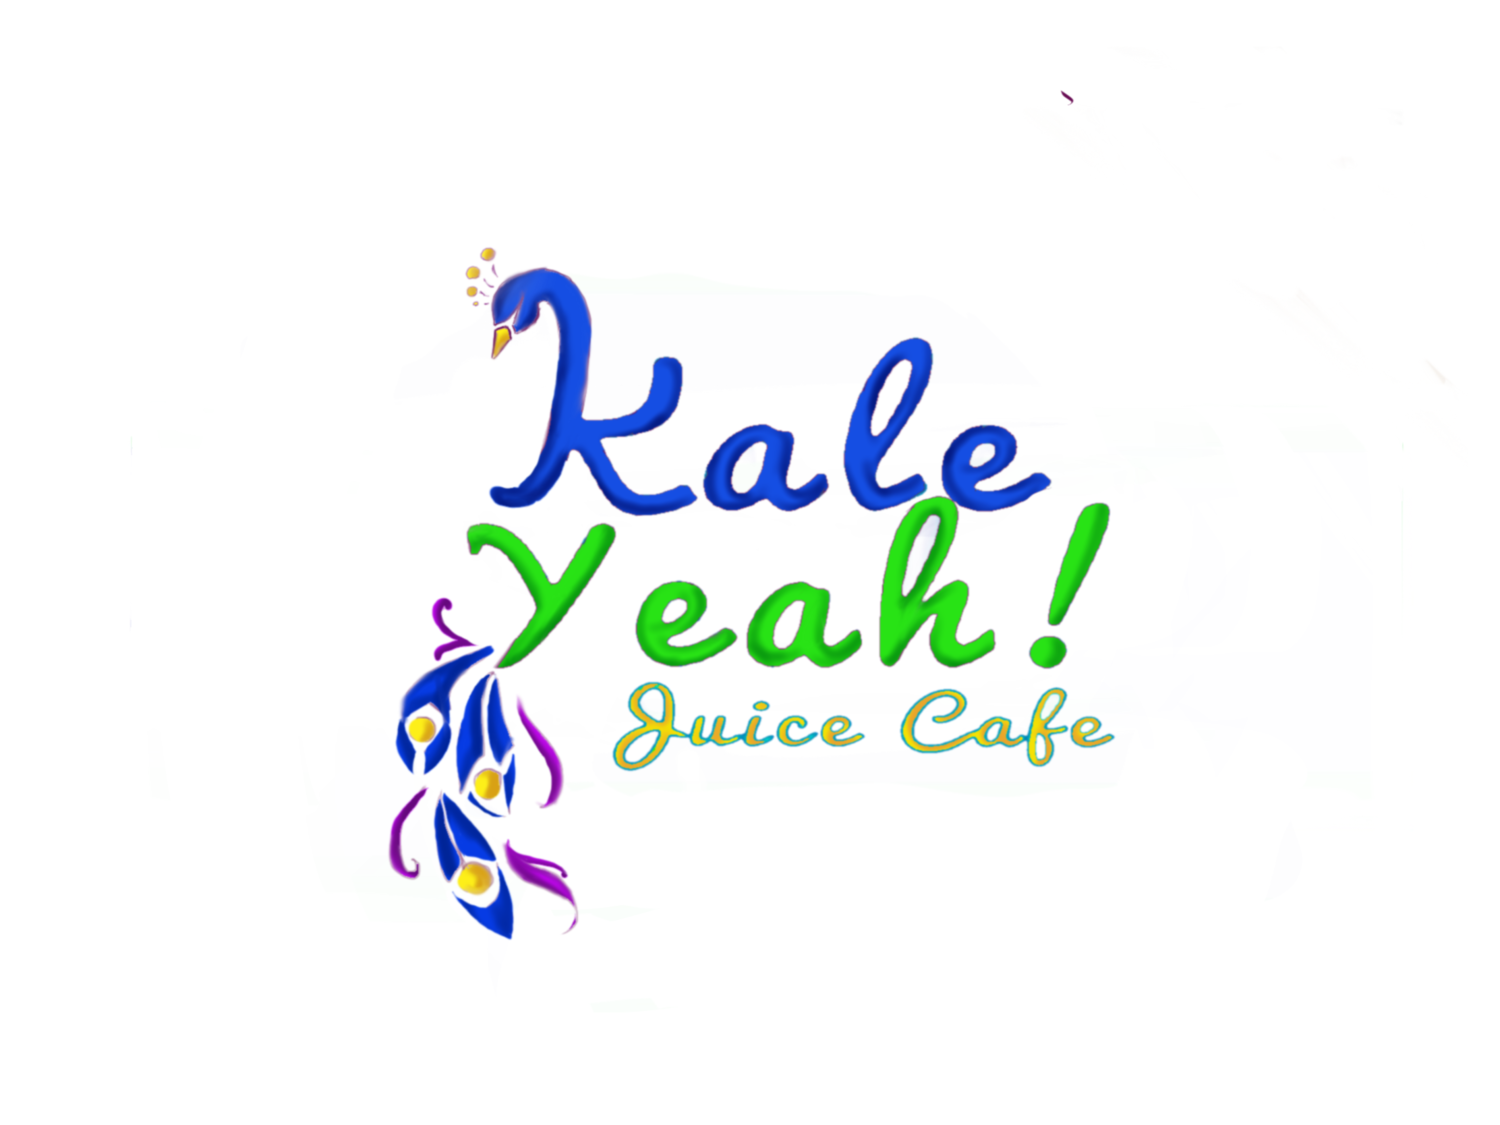 Kale Yeah! Juice Cafe